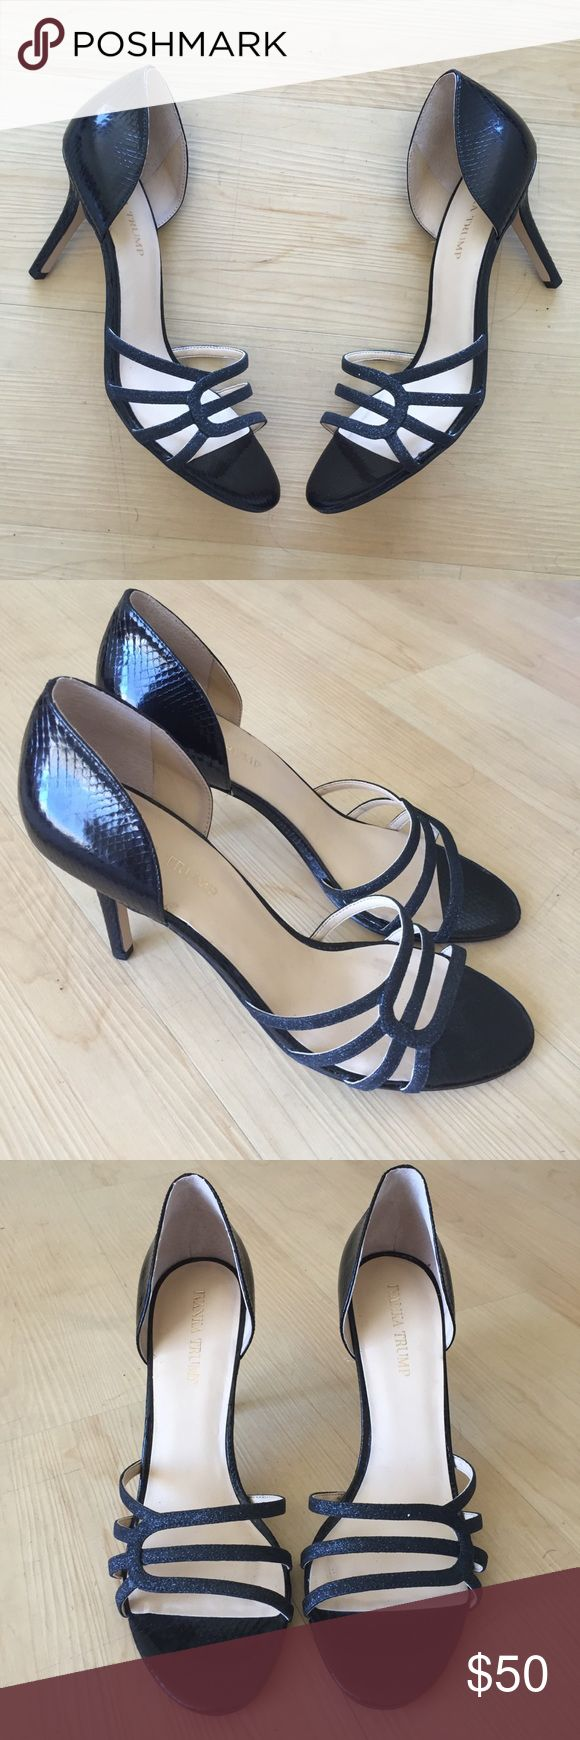 Ivanka Trump d'orsay black heels strappy sz 10 Brand new with out box. Display shoes so they do have Very slight scuffs on the bottom. Ivanka Trump black d'orsay heels size 10. Heel height ~3.75inches. Ivanka Trump Shoes Heels